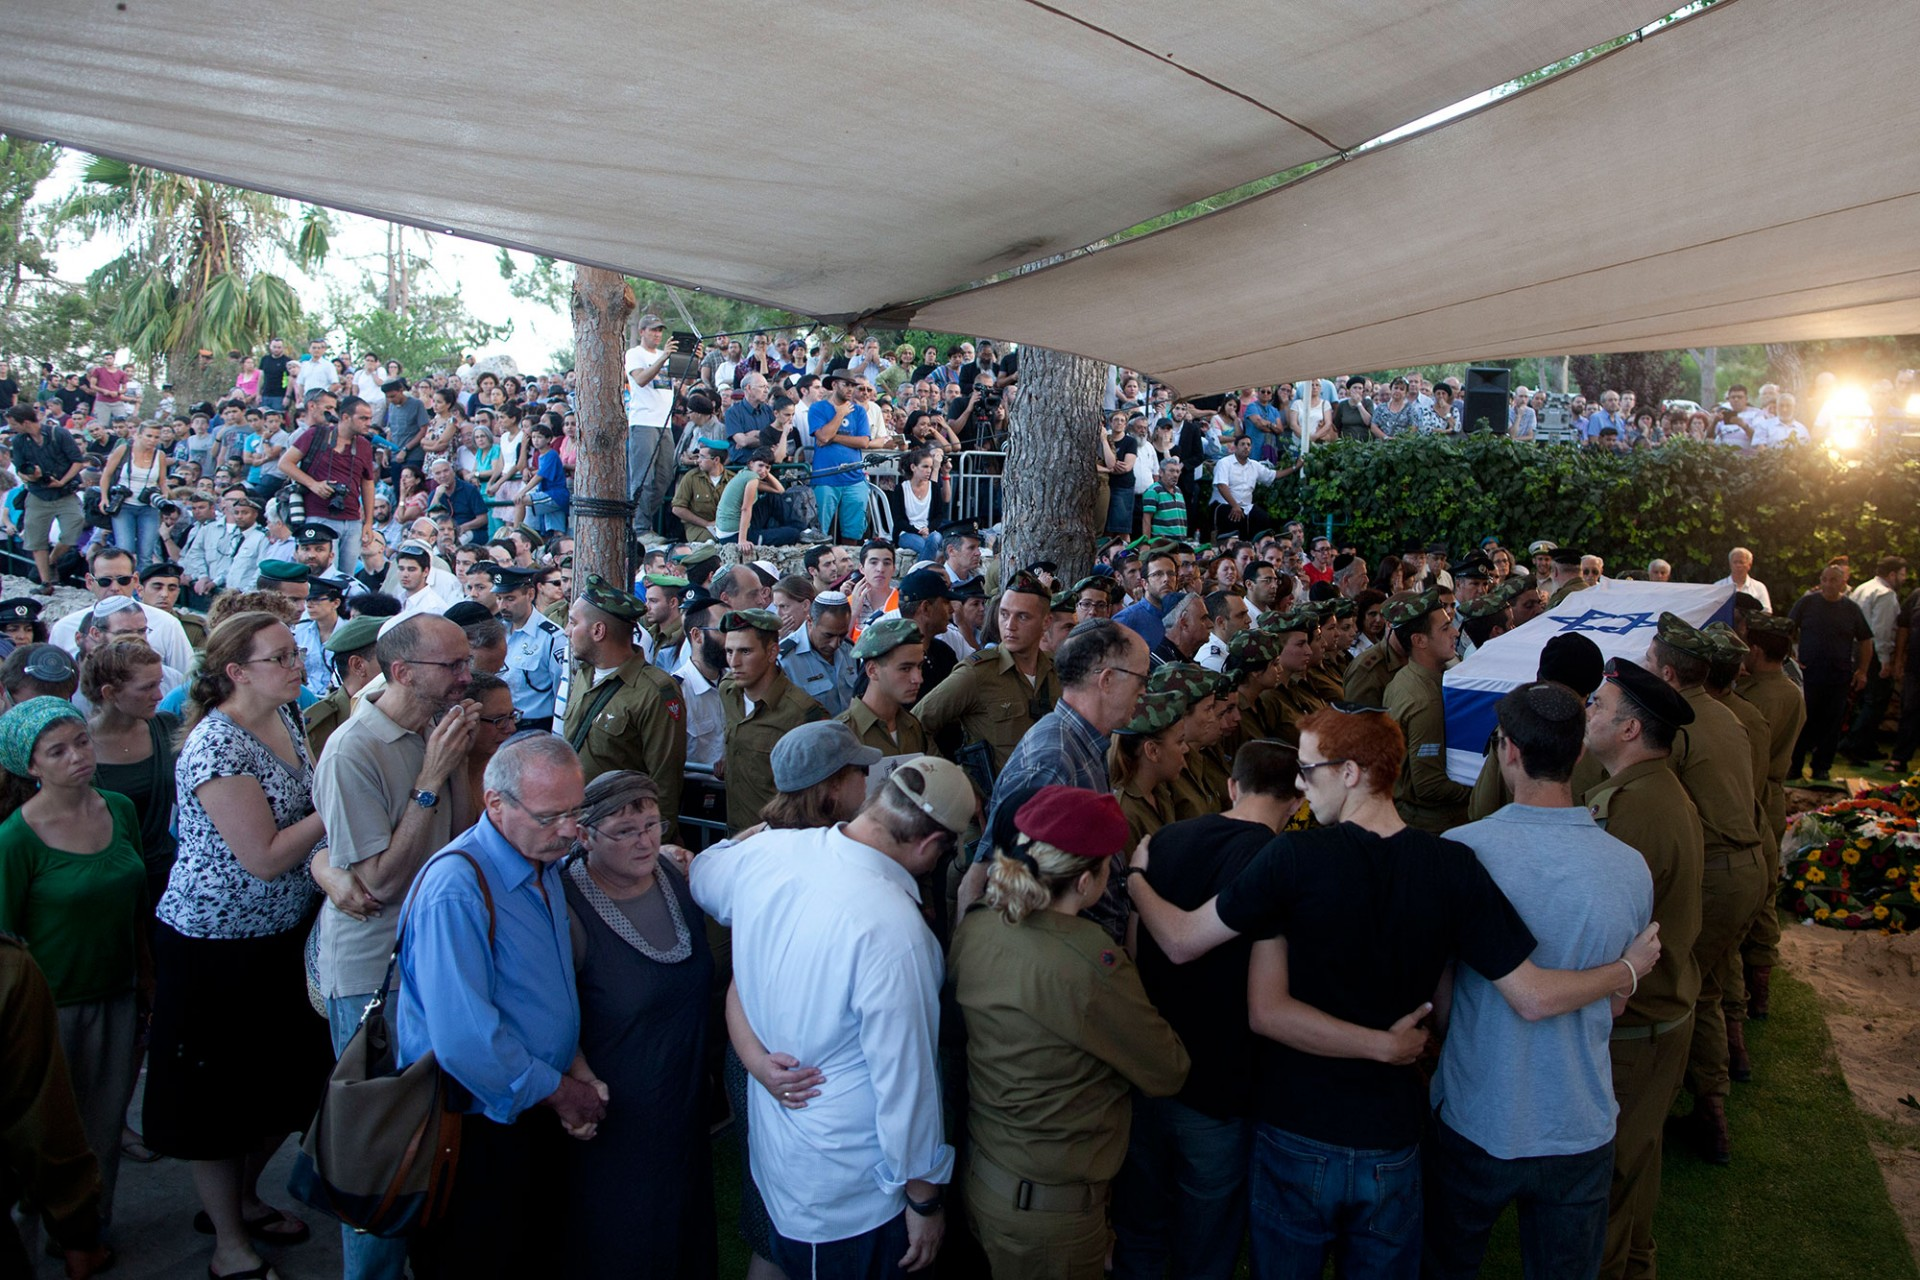 Israeli soldiers carry the flag-draped coffin of their comrade Barkai Yishai Shor during his funeral on July 29, 2014 in Jerusalem, Israel.